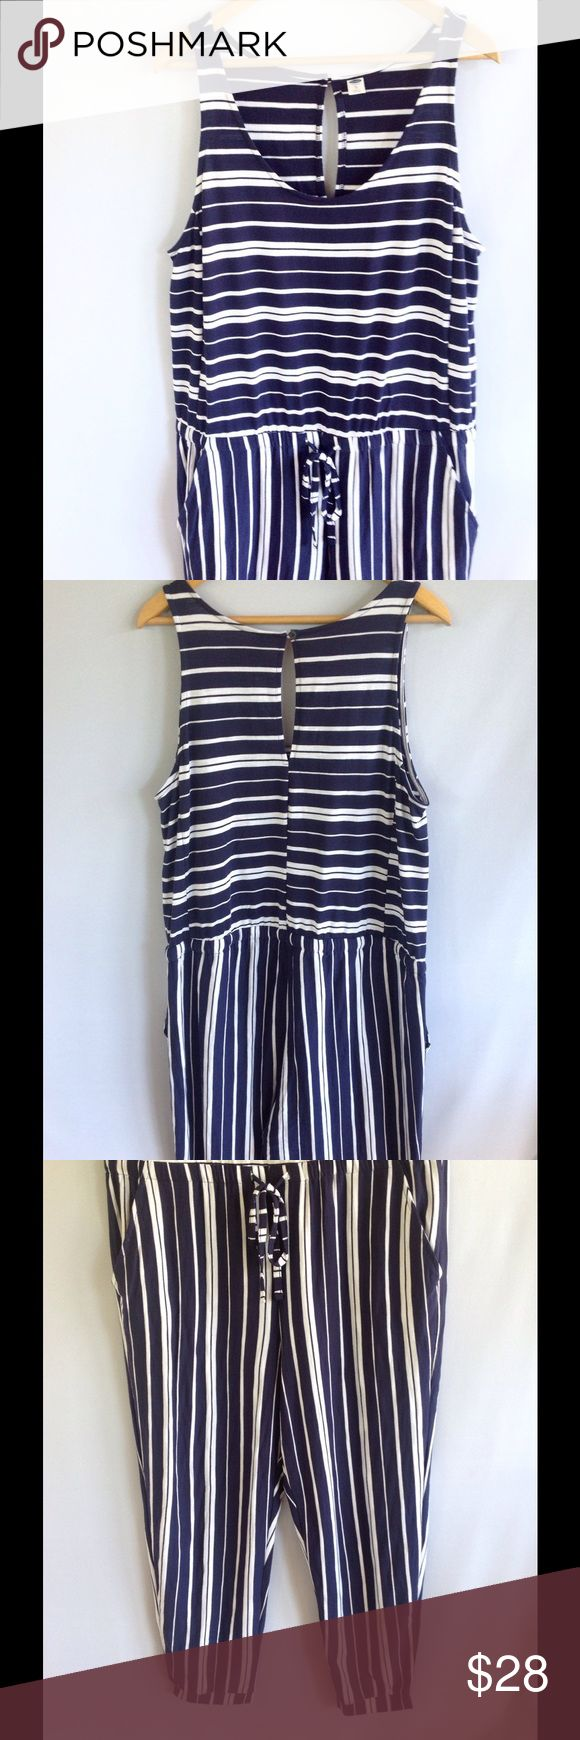 Old Navy - Navy and White Pant Jump Suit / Romper Adorable one piece tank /pant suit /jumper.  Ankle band style. Super cute on! Excellent condition! Old Navy Pants Jumpsuits & Rompers